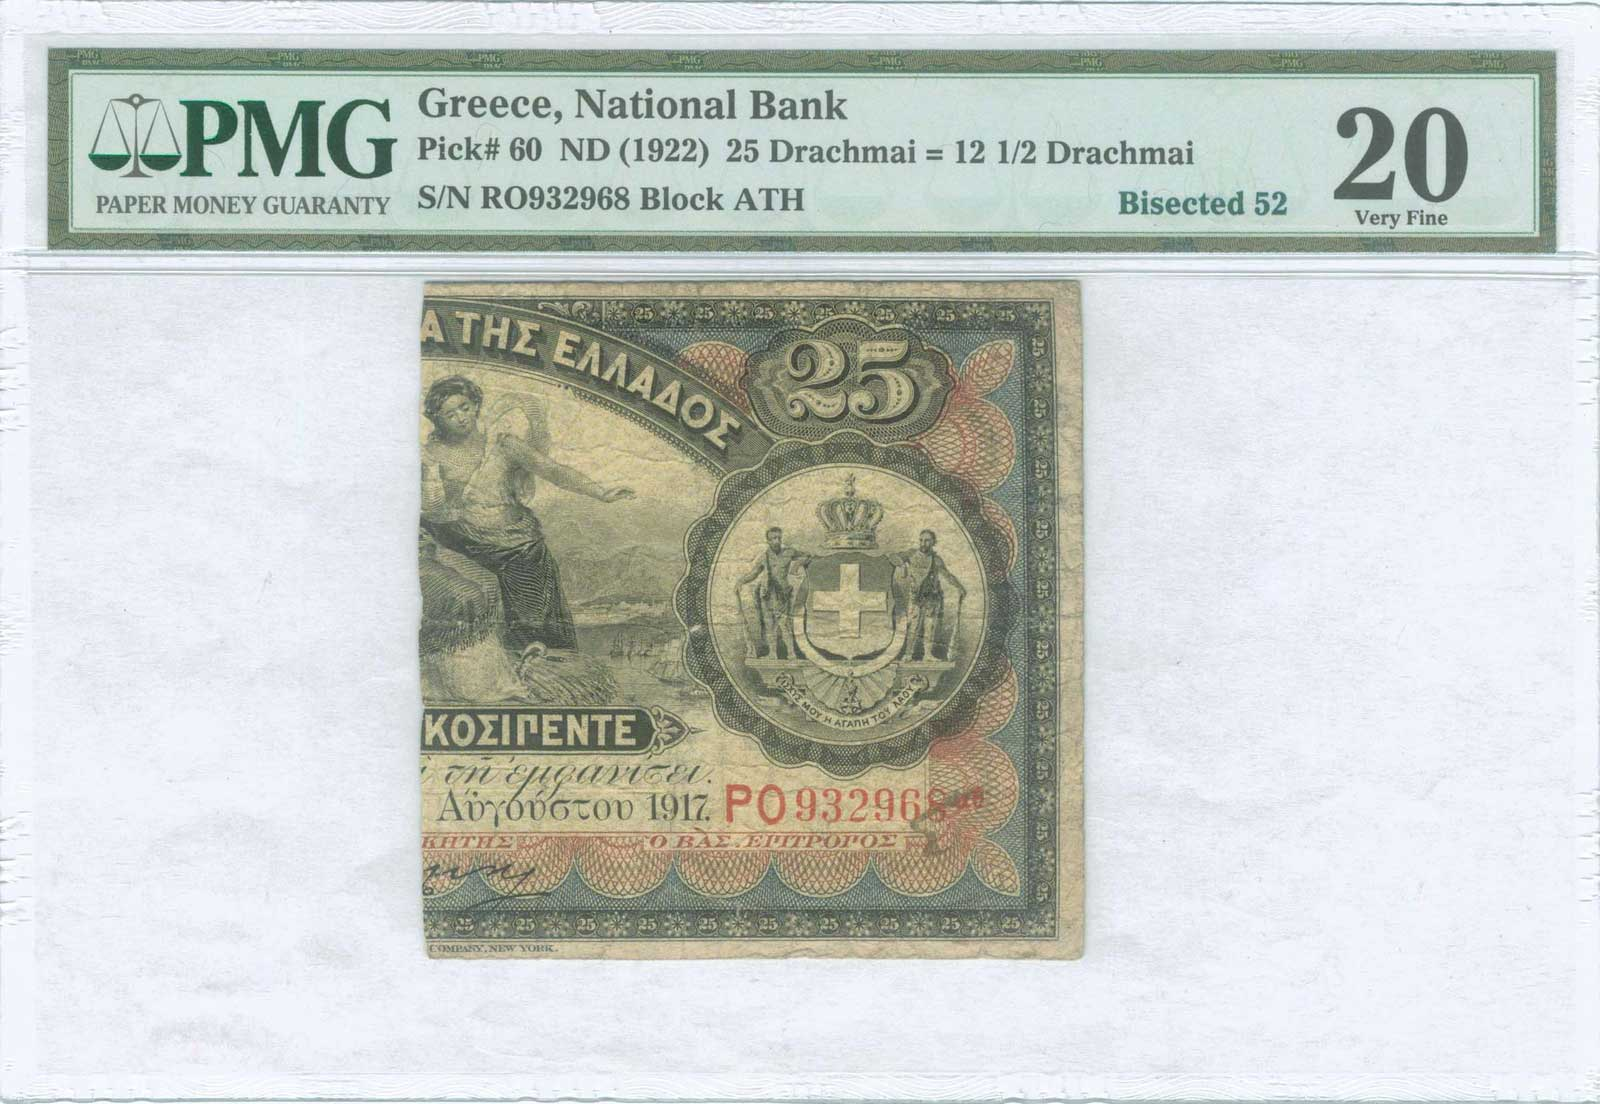 Lot 9280 - GREECE-  PAPER MONEY - BANKNOTES 1922 & 1926  LOANS -  A. Karamitsos Public & LIVE Bid Auction 610 Coins, Medals & Banknotes